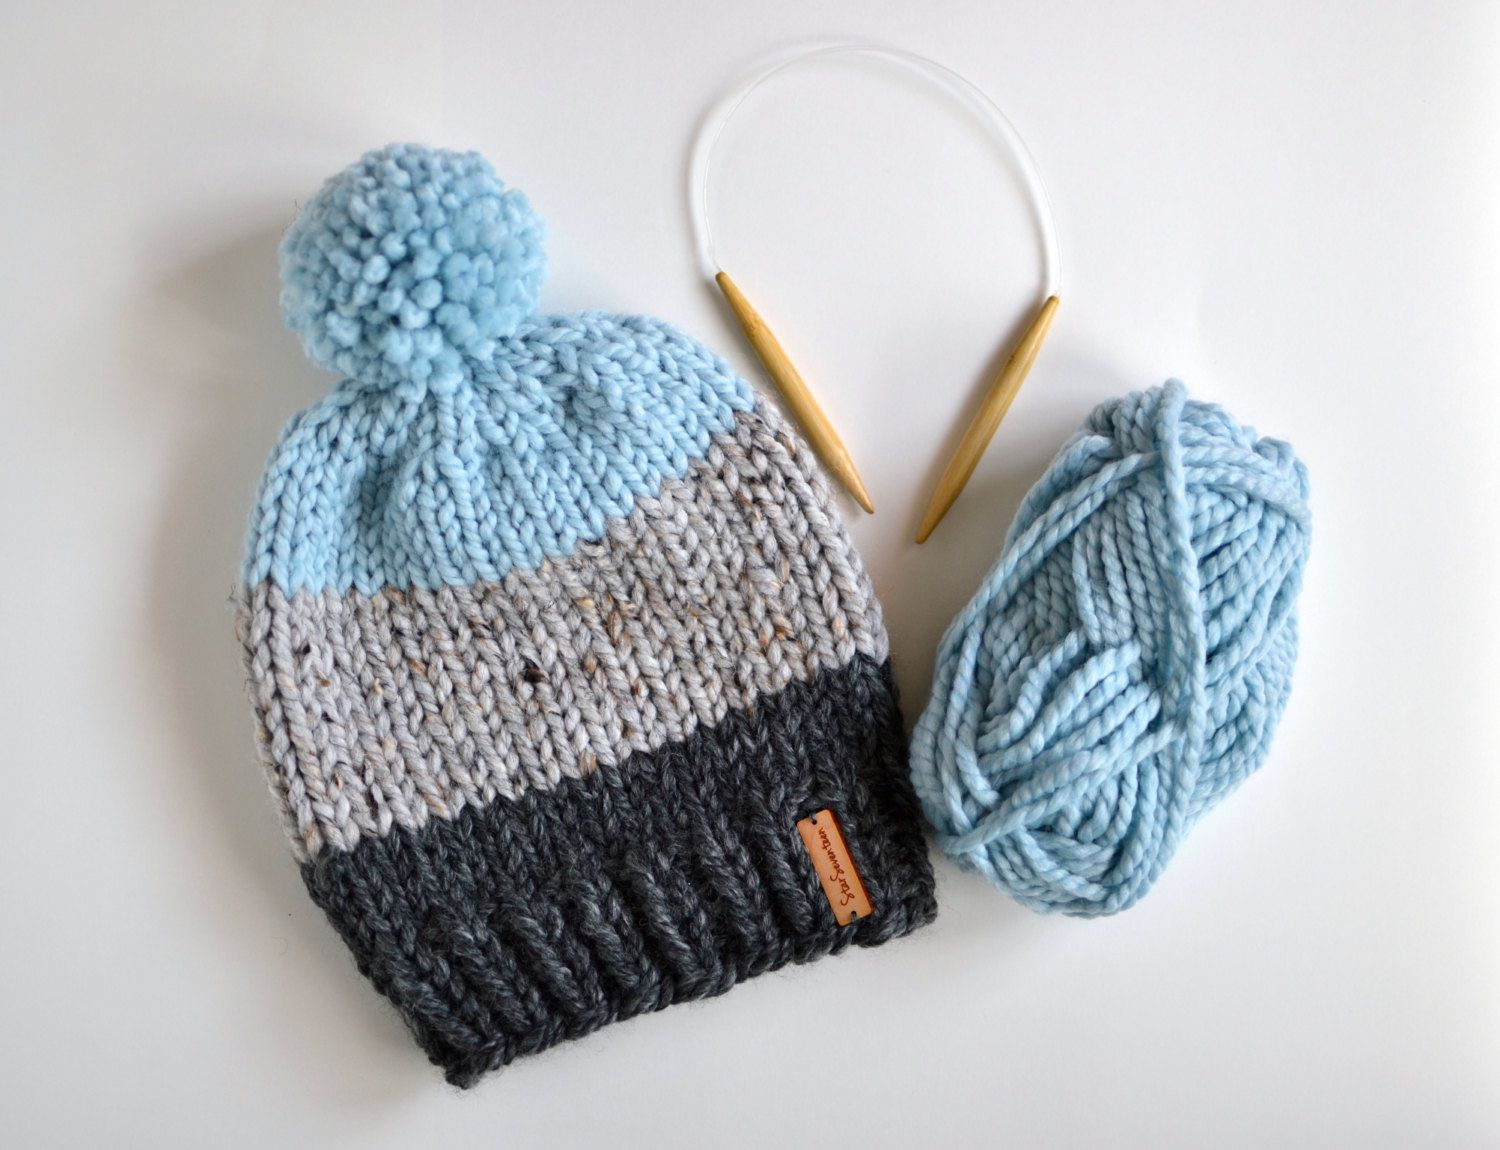 87b43d0cc Hand Knitted Color Block Beanie With Pom Pom // Chunky Knit Stripe ...